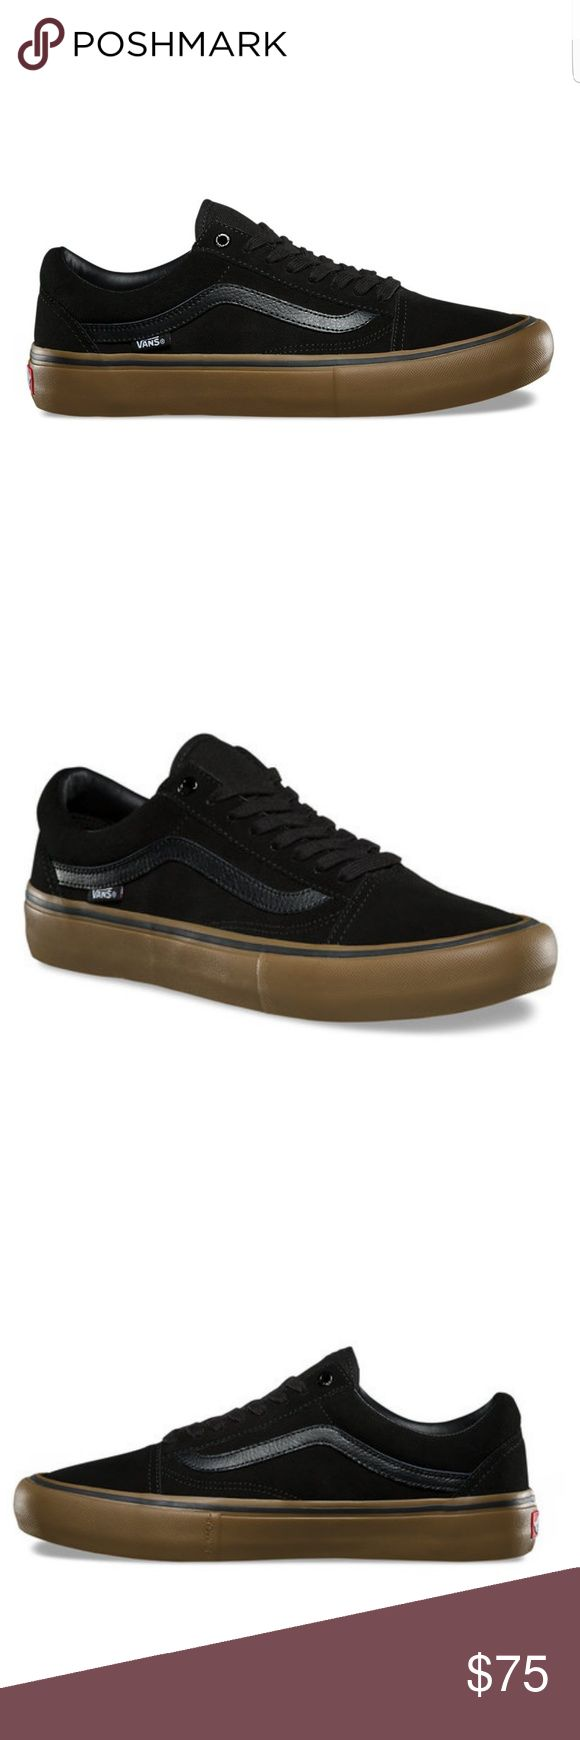 New Vans Old Skool Pro Skate Sneakers Vans Old Skool Pro Skate shoesin black with black leather logo size mens 7 or womans 8.5 Vans The Old Skool Pro, a Vans classic upgraded for enhanced performance, features suede and canvas uppers, single-wrap foxing tape, UltraCush HD sockliners to keep the foot close to the board while providing the highest level of impact cushioning, and Vans original waffle outsoles for superior grip and control. New without tag used only as store display only NO BOX…